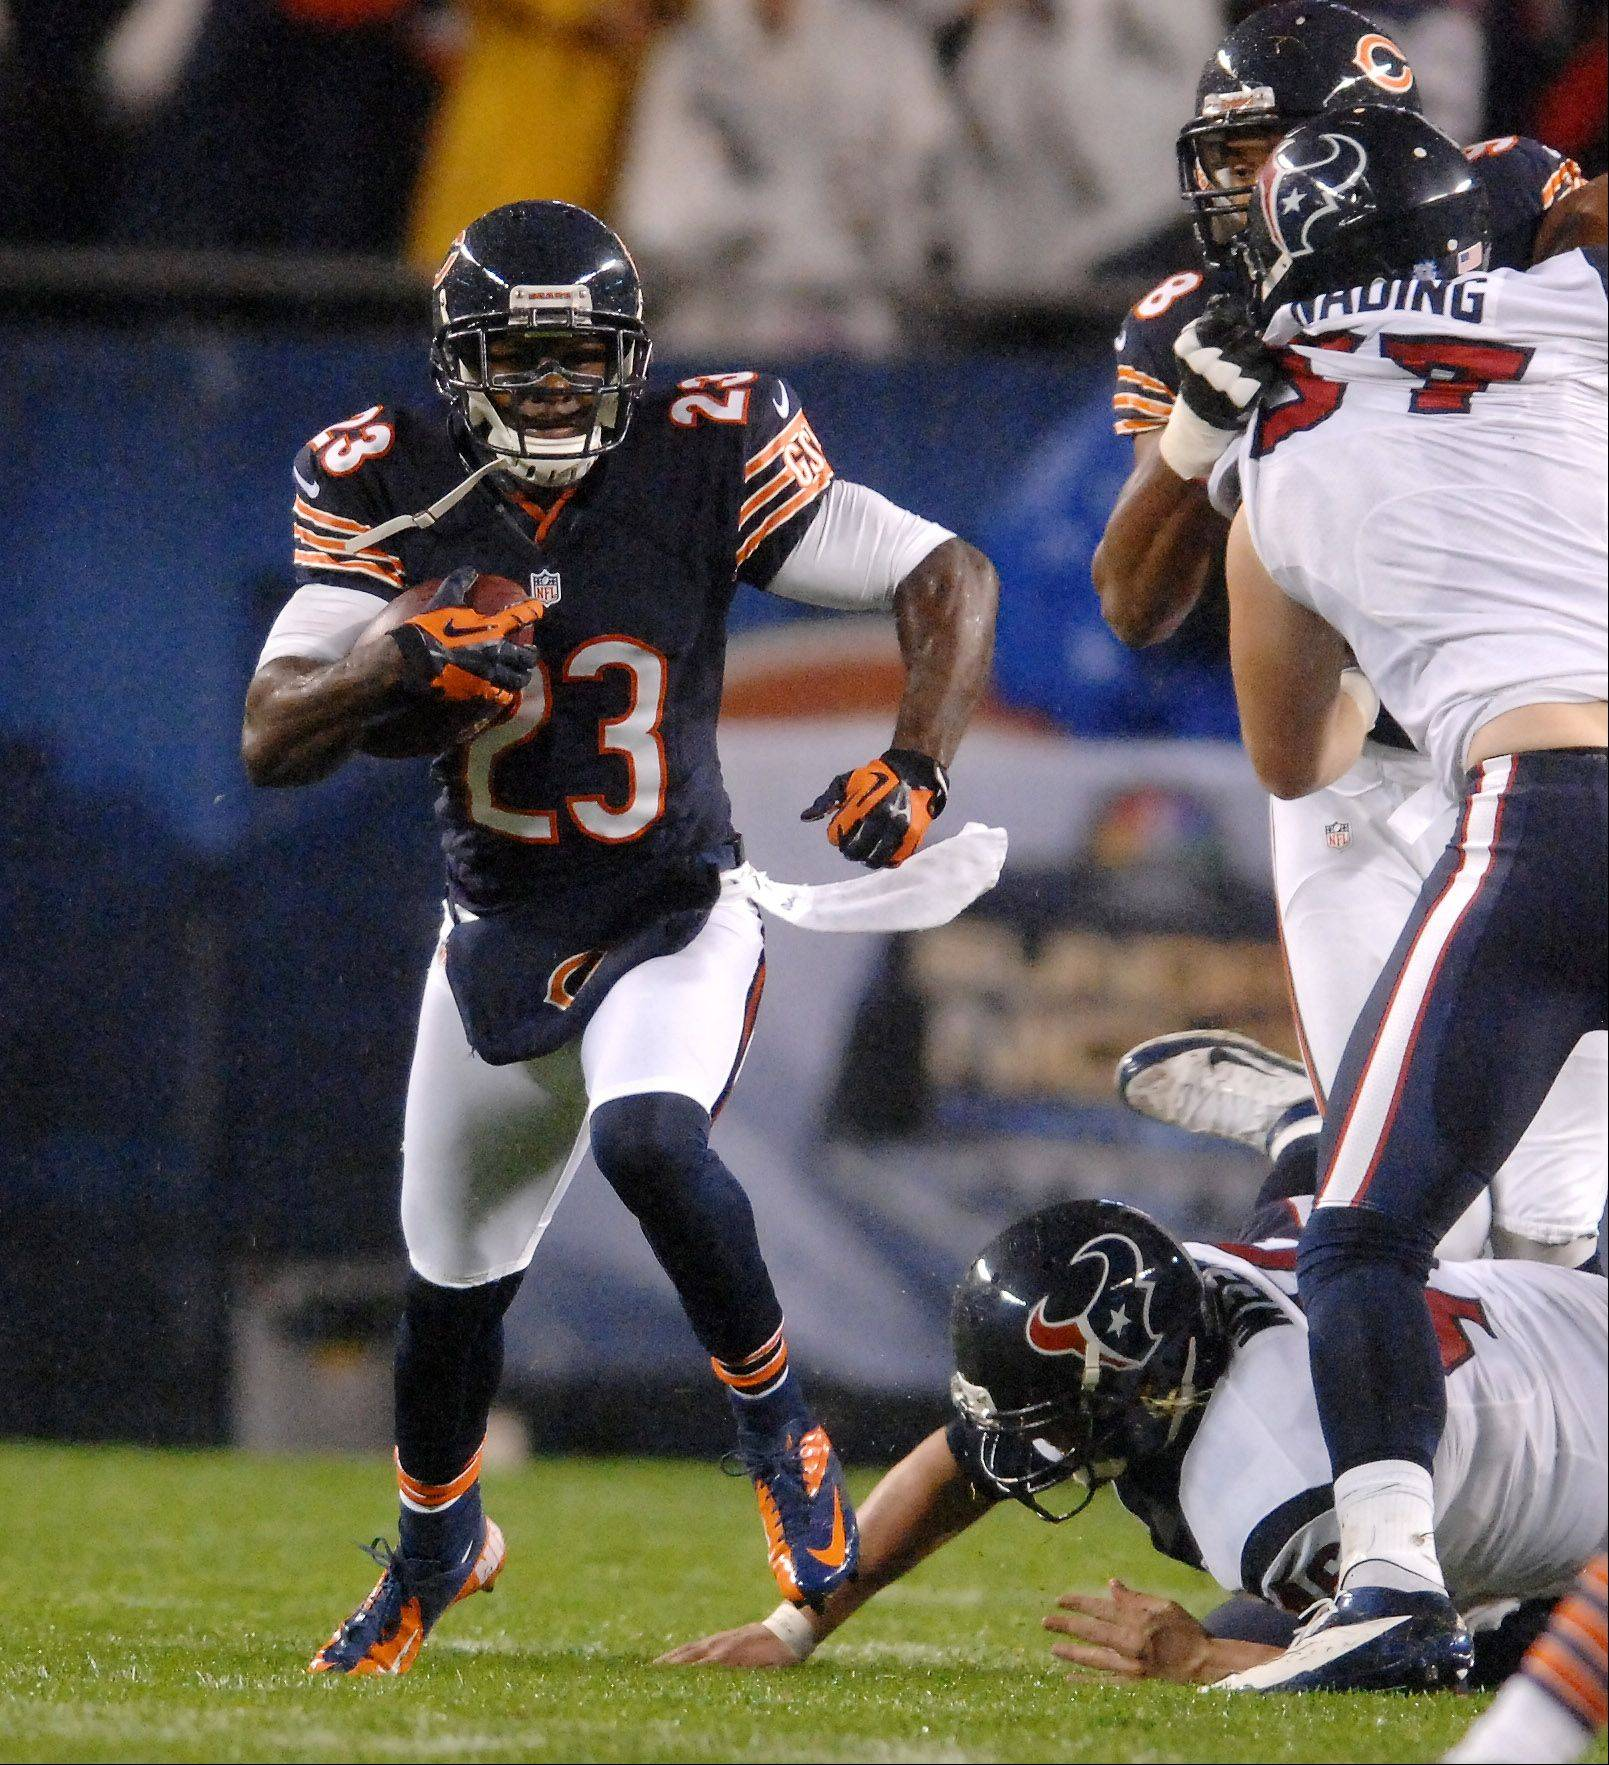 Bears wide receiver Devin Hester (23) breaks a tackle on a punt return during Sunday�s game at Soldier Field in Chicago.